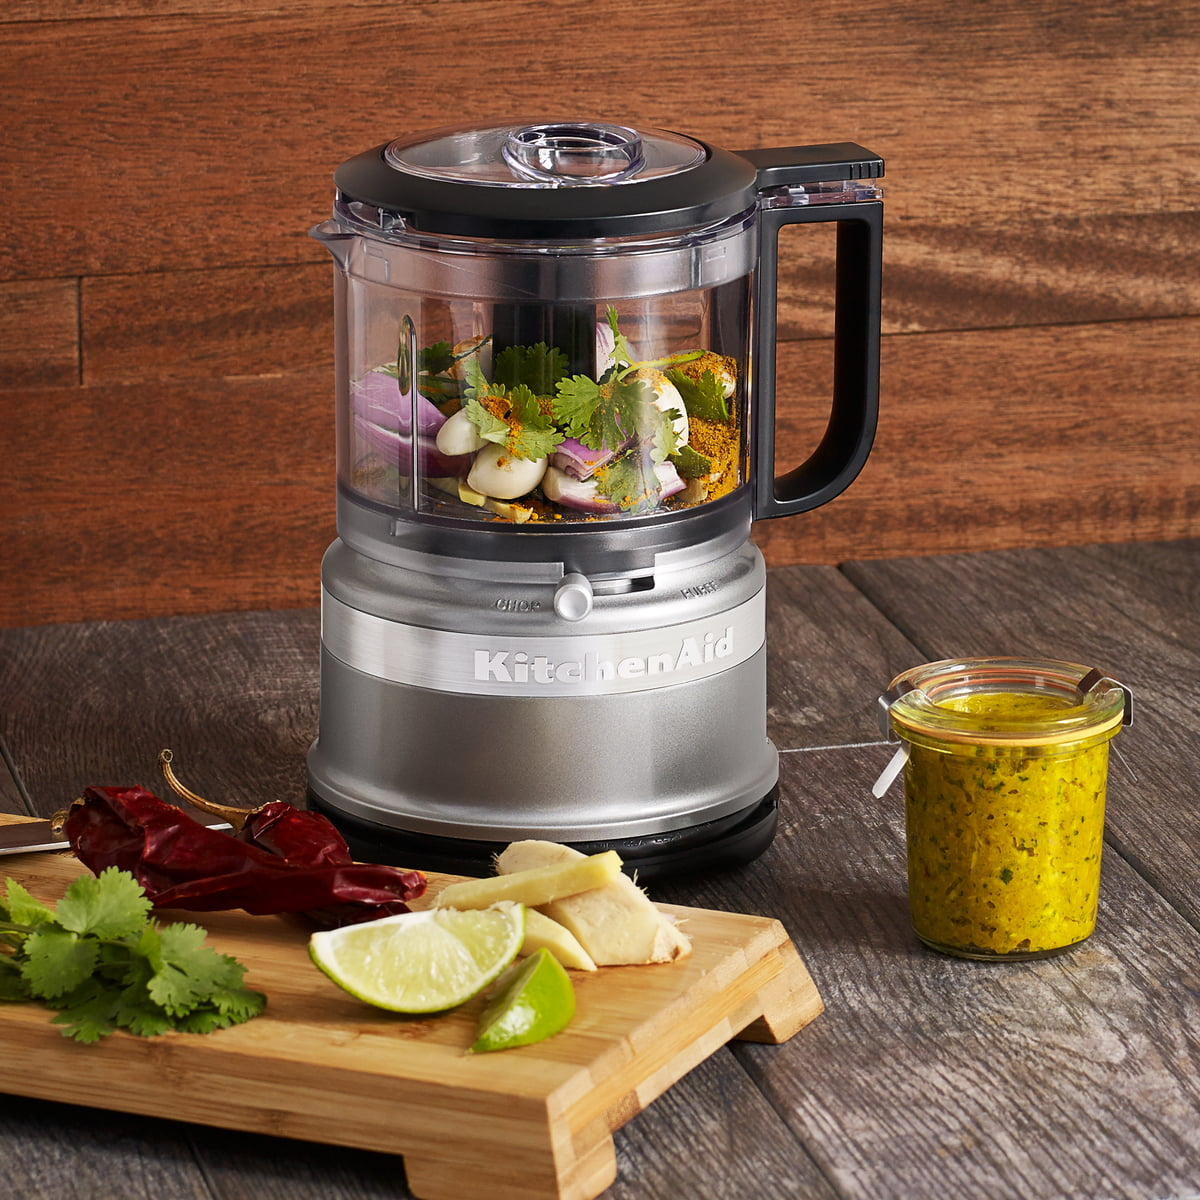 Mini Food Kitchen: The Chopper By KitchenAid In The Home Design Shop